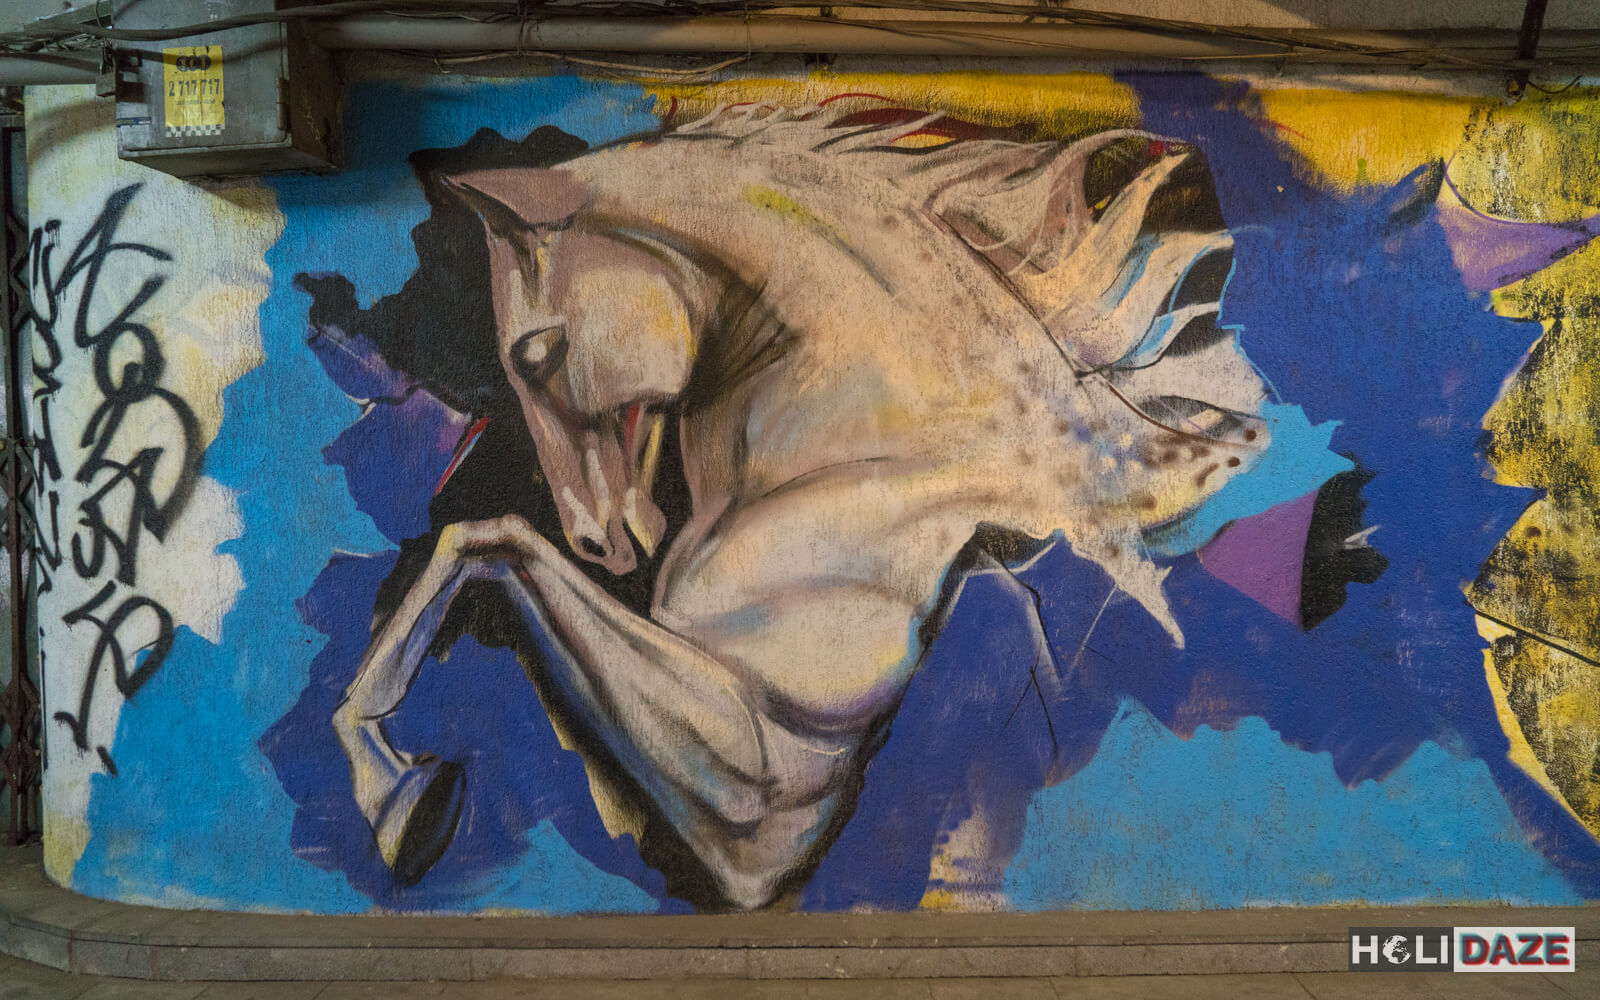 Underground Tbilisi street art at Nikoloz Baratashvili Bridge